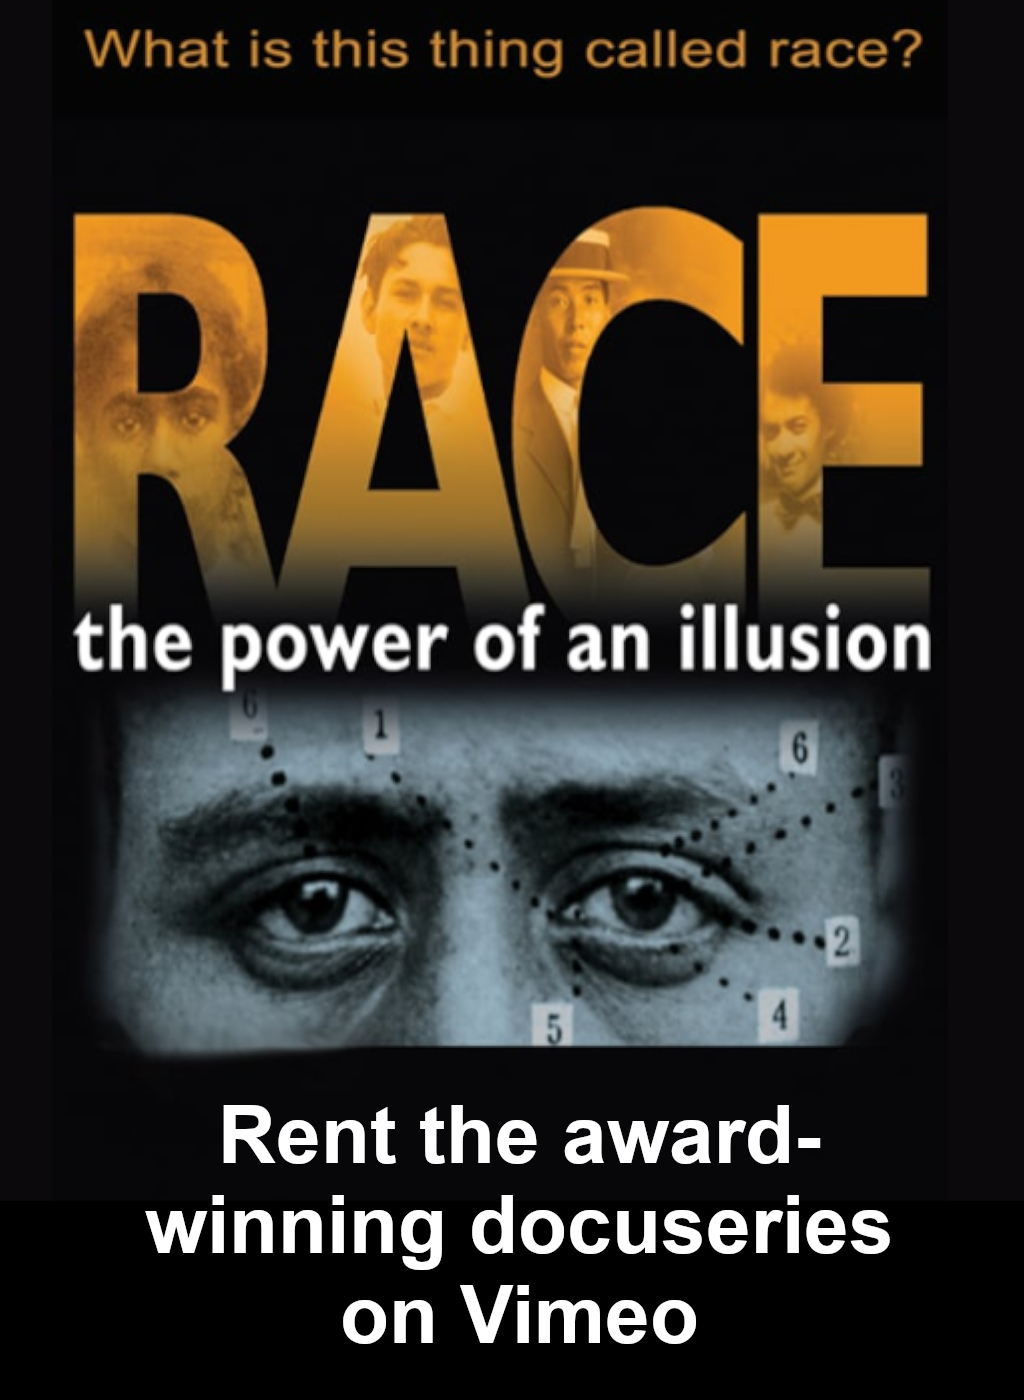 Race The Power of Illusion